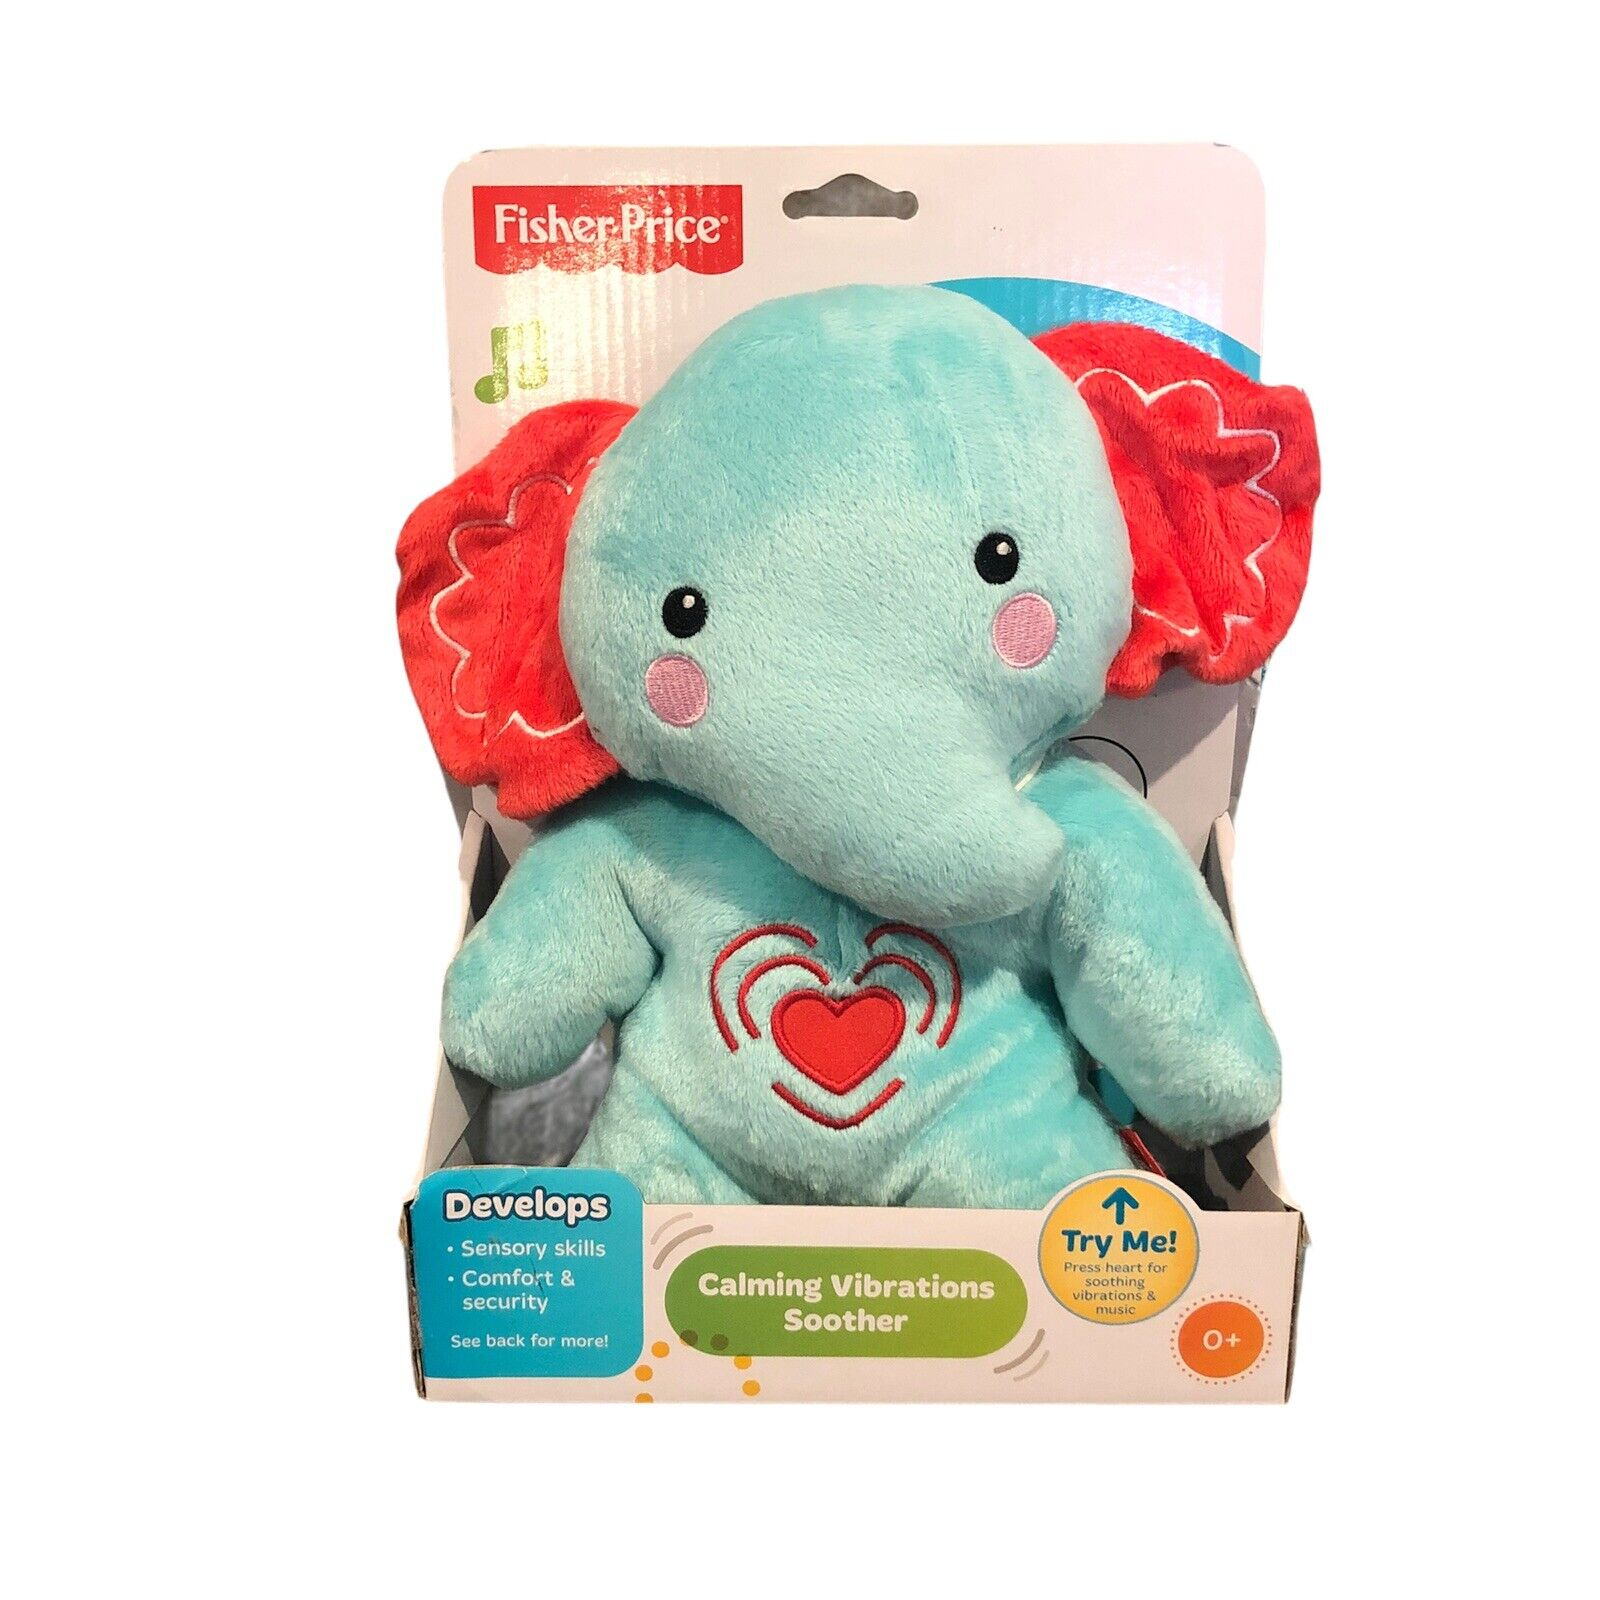 FISHER PRICE SNUGAPUPPY CALMING VIBRATIONS SOOTHER FPM17 *NEW*